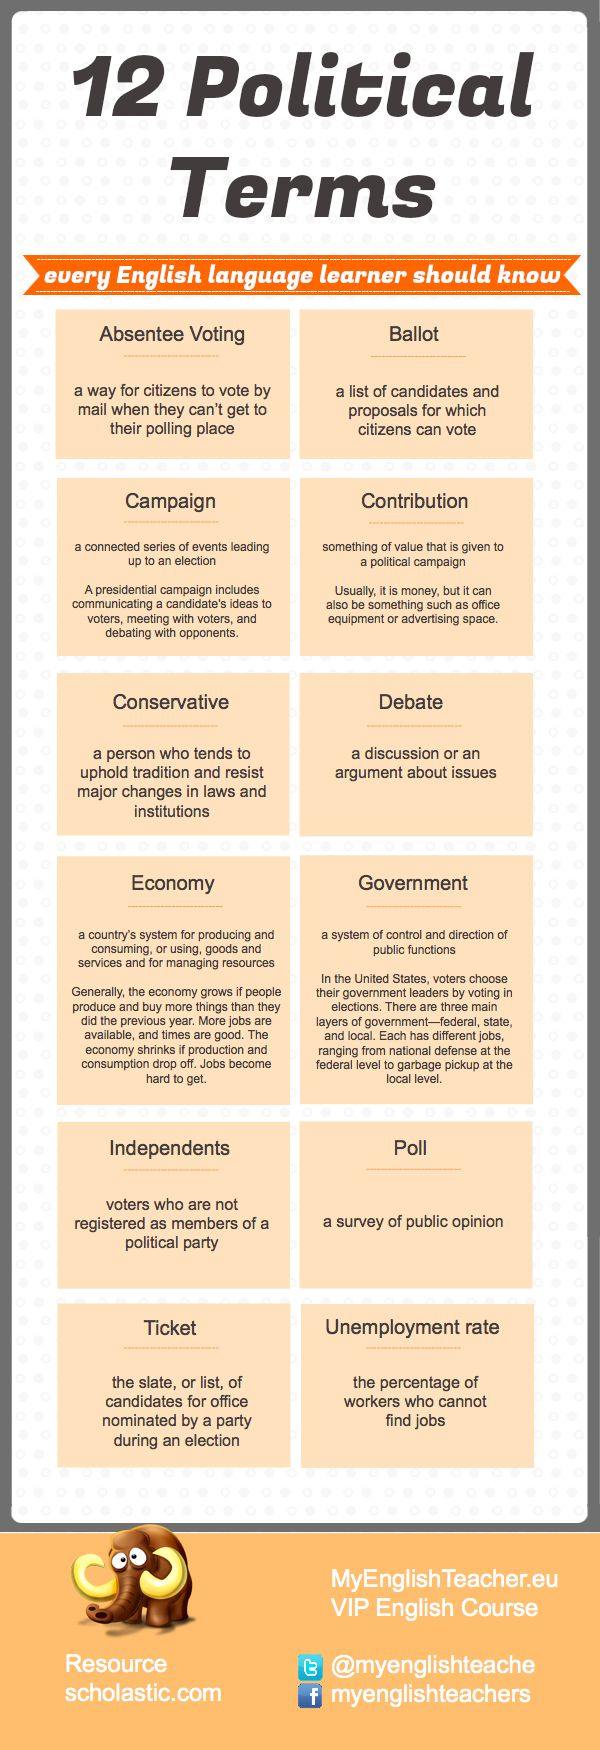 High School English Essay Topics  Political Terms Every English Language Learner Should Know Infographic Essay Samples For High School Students also What Is Thesis Statement In Essay  Best My English Language Images On Pinterest  English Language  Persuasive Essay Thesis Examples